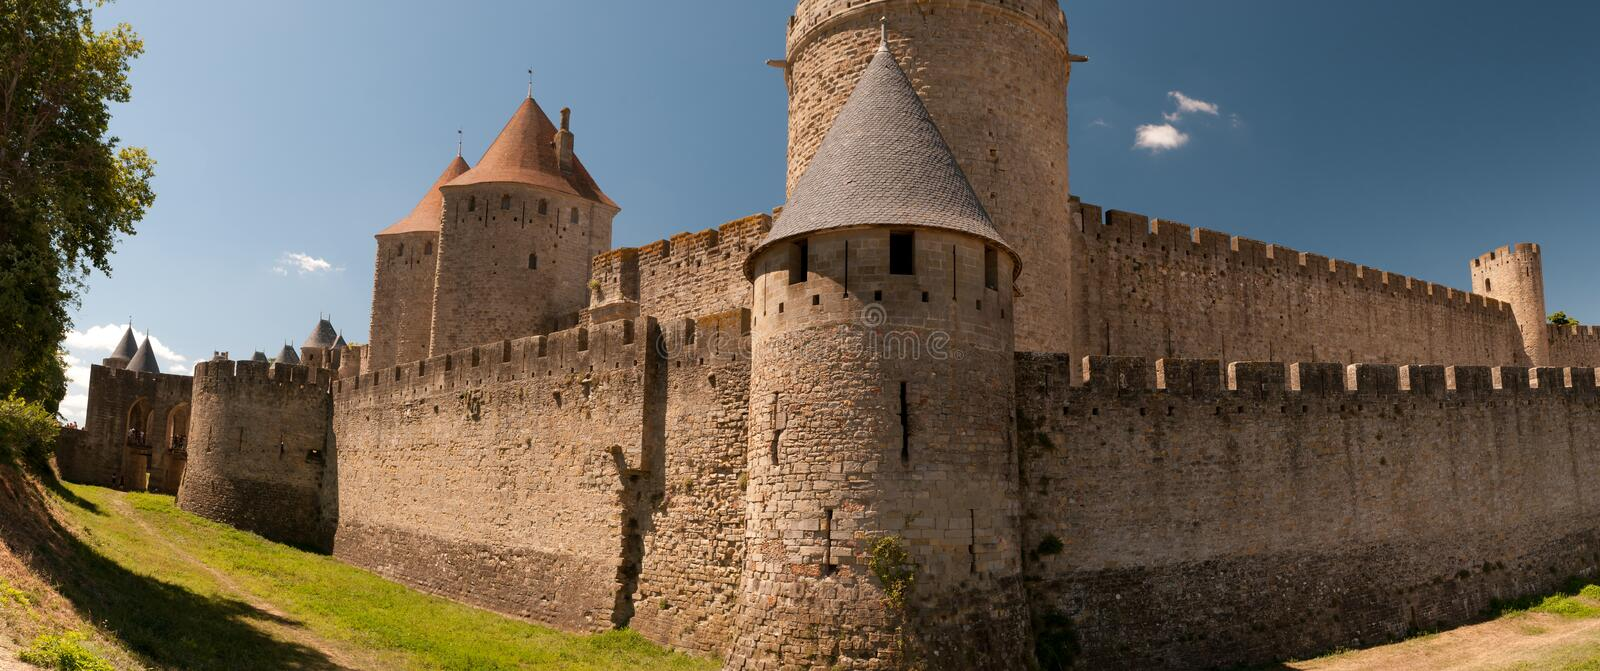 Carcassonne, in France stock photo